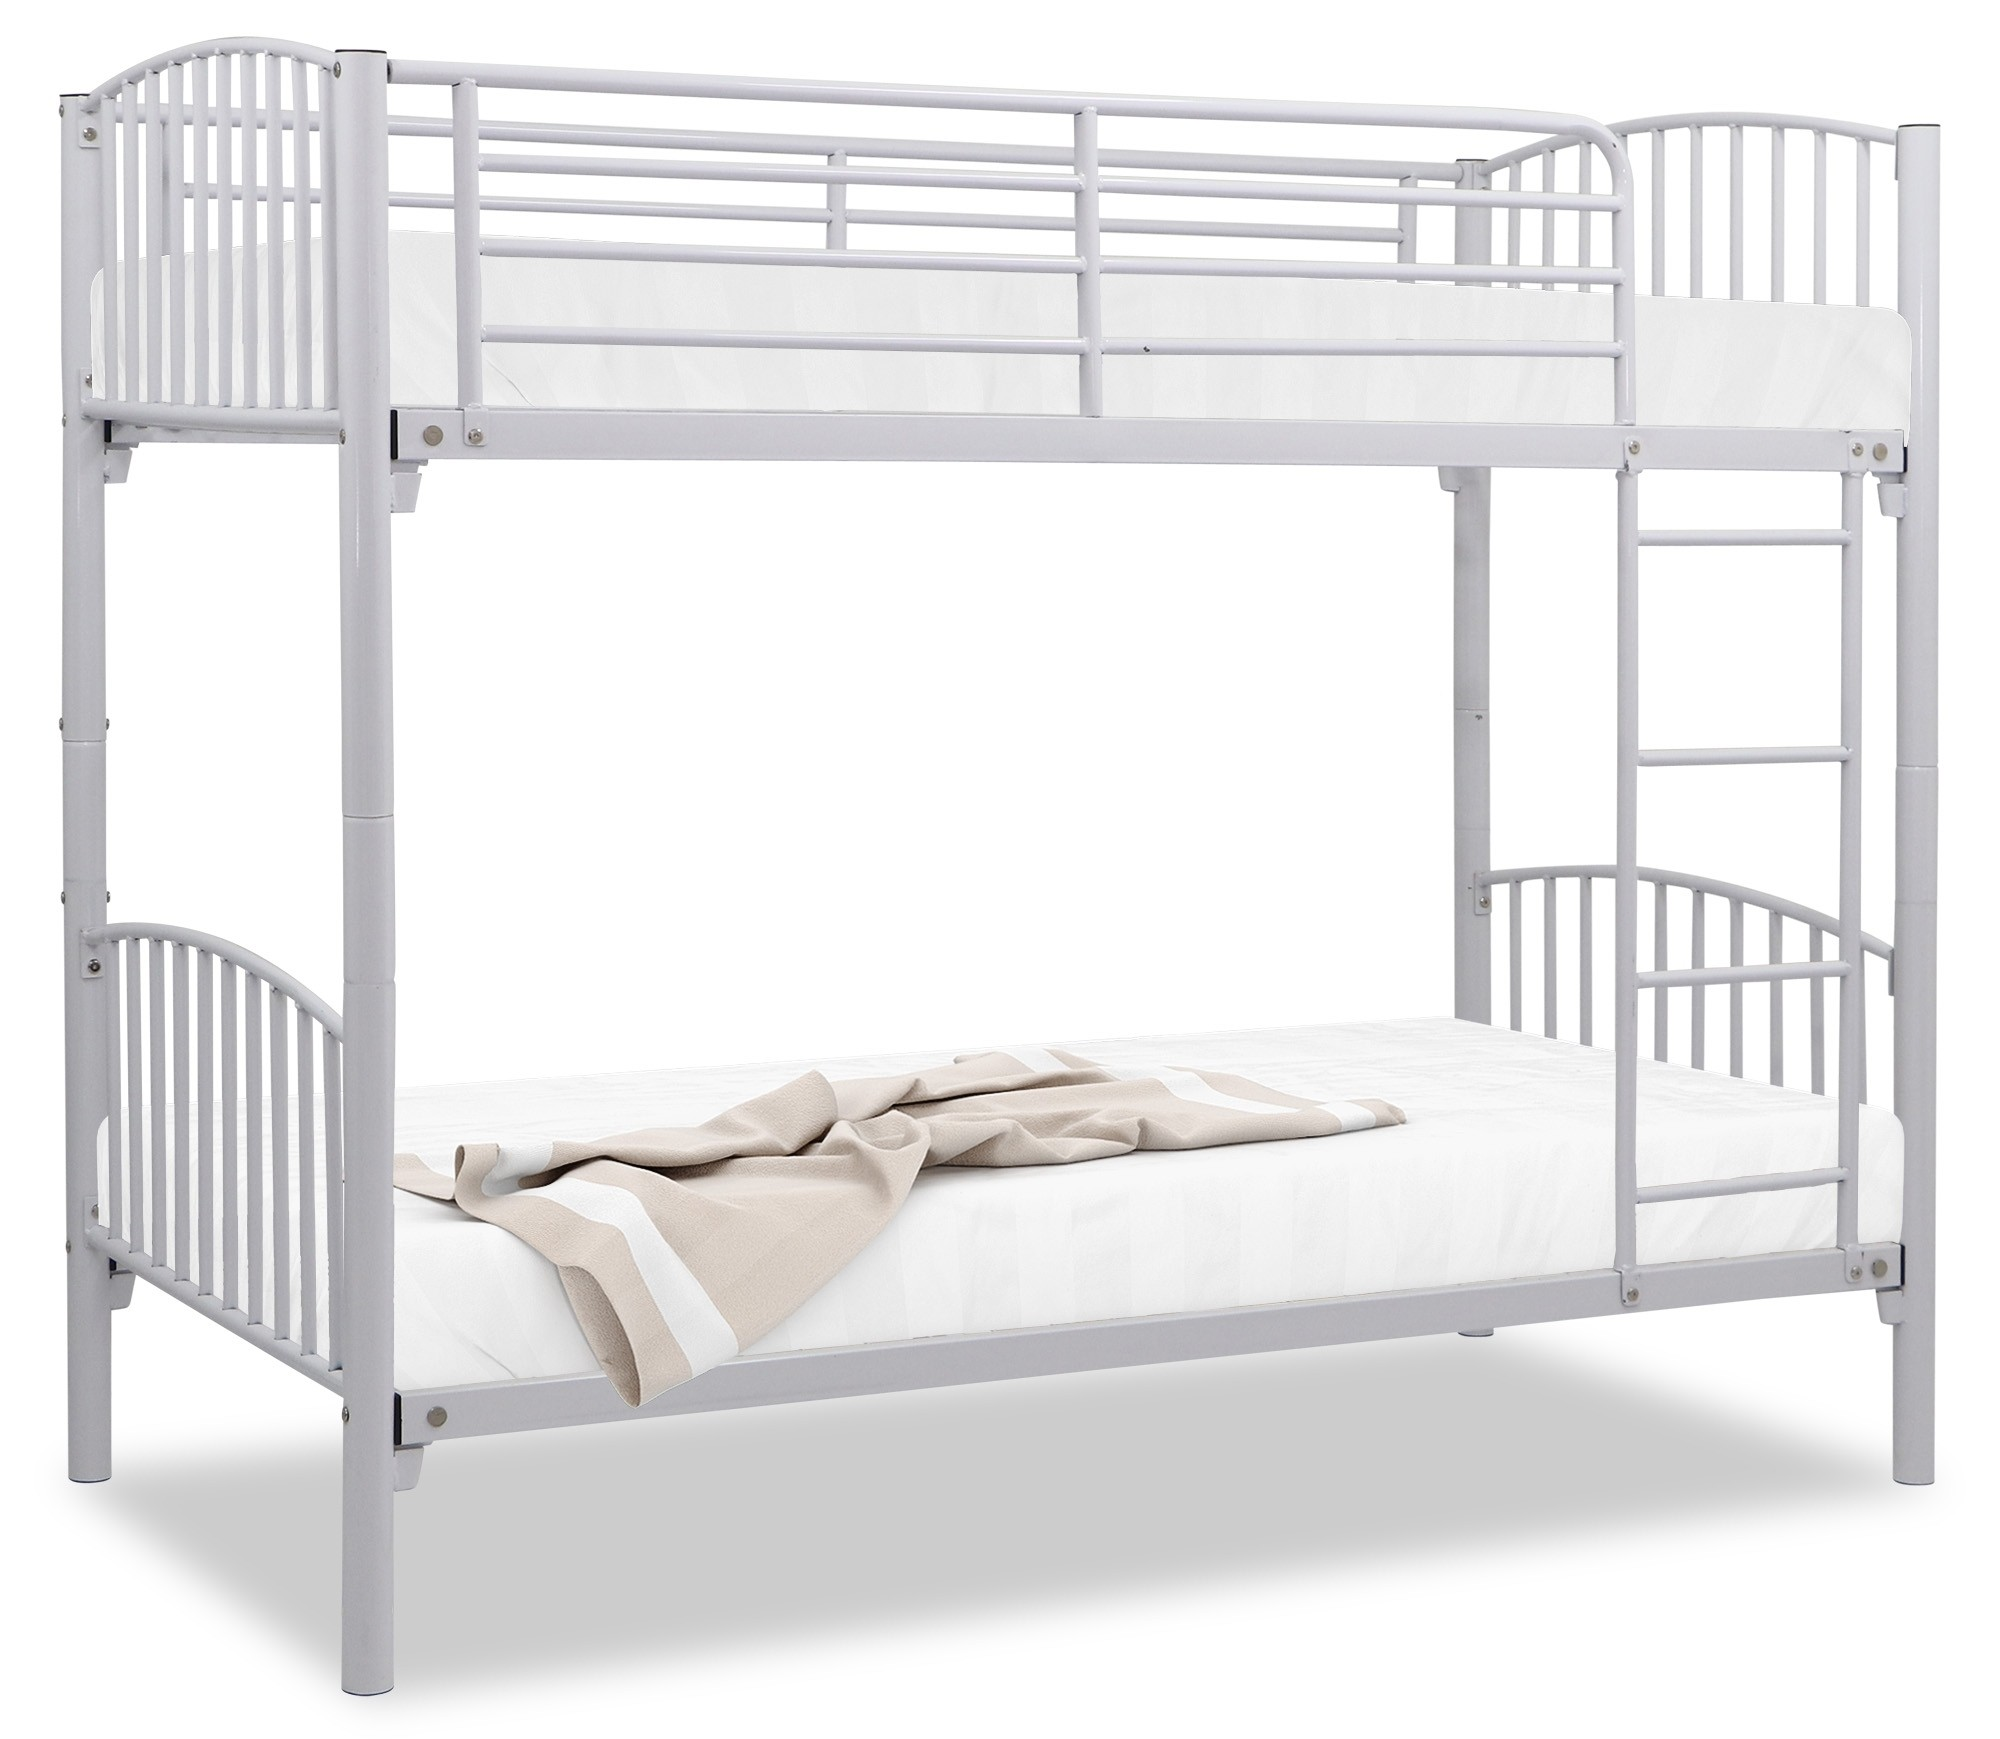 Gerald Metal Single Size Double Decker Bed